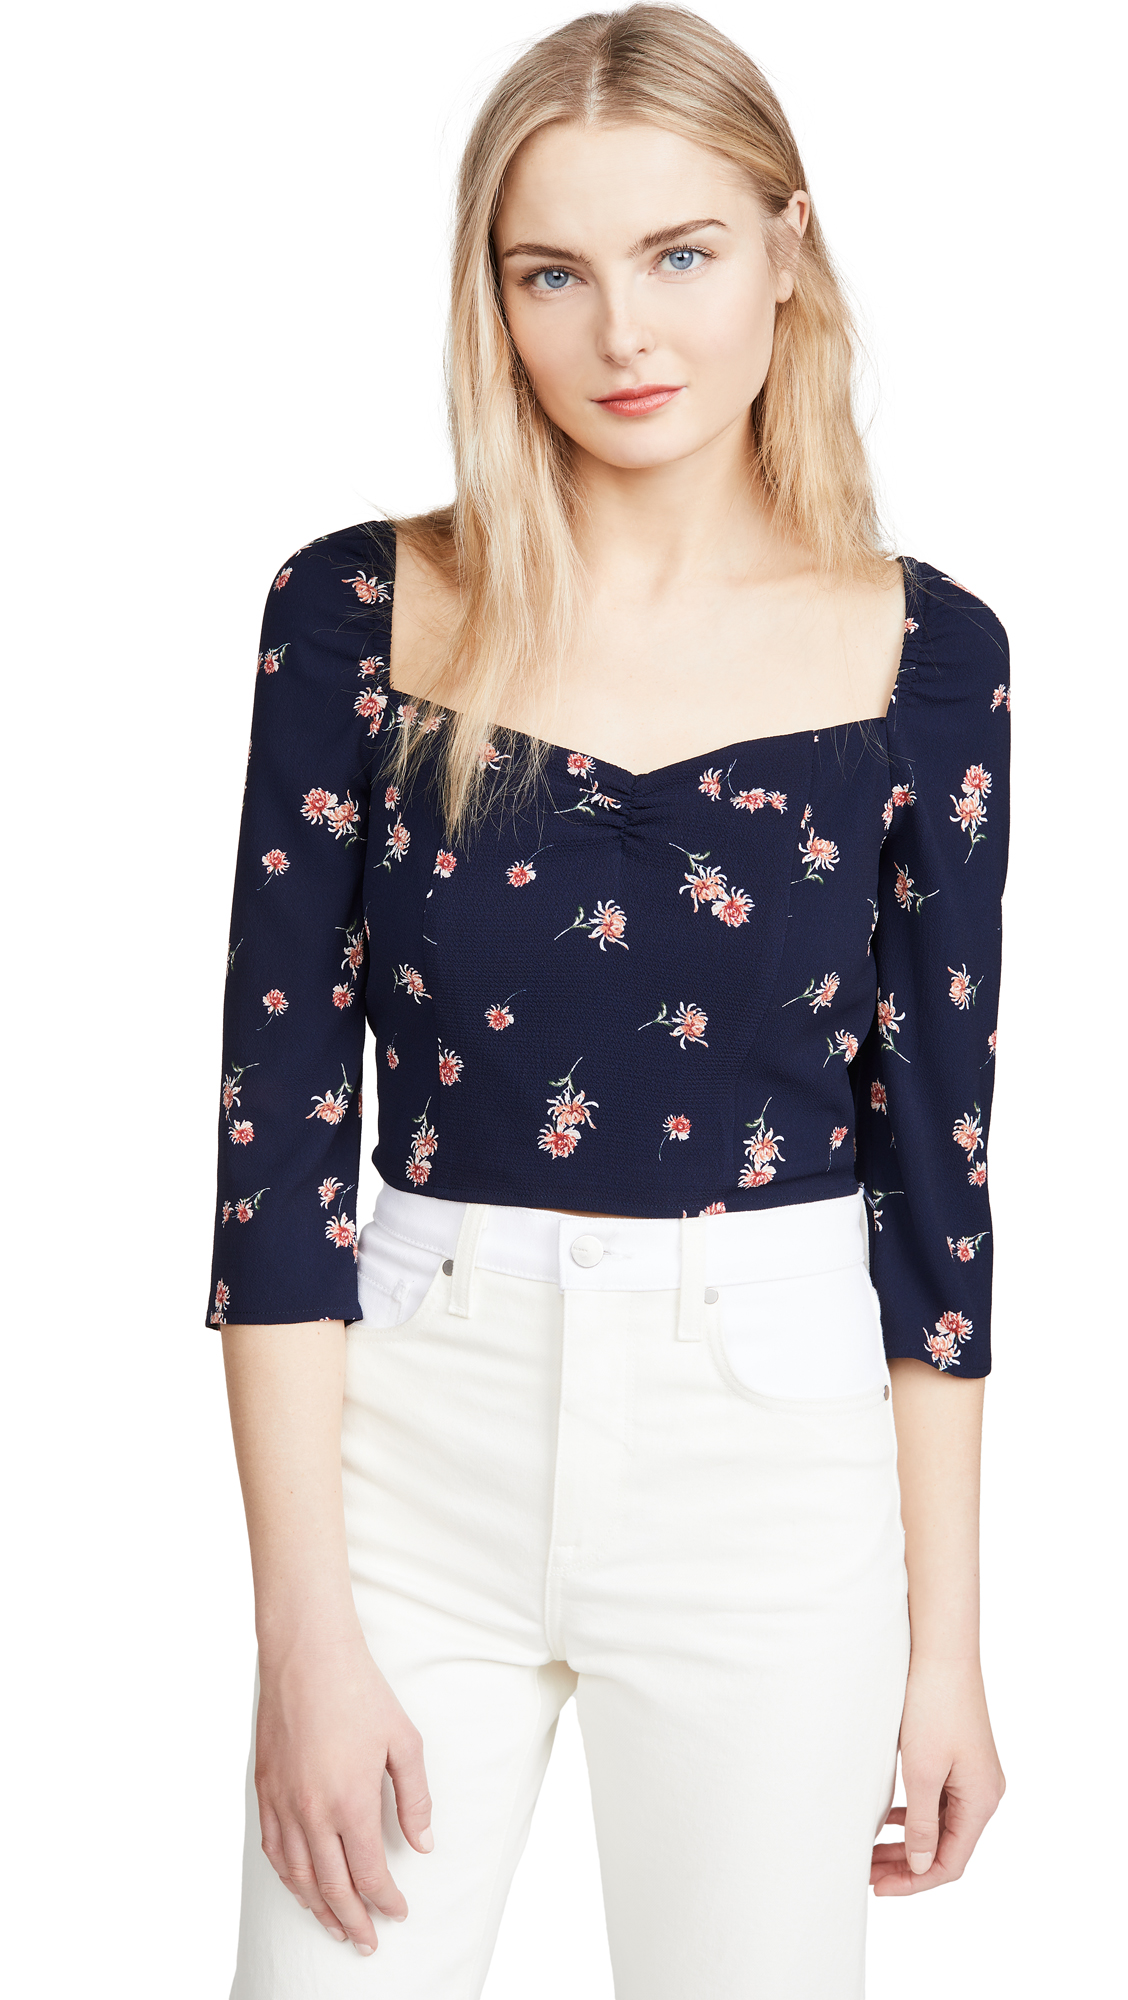 BB Dakota Scattered Daisy Printed Puff Sleeve Top – 40% Off Sale